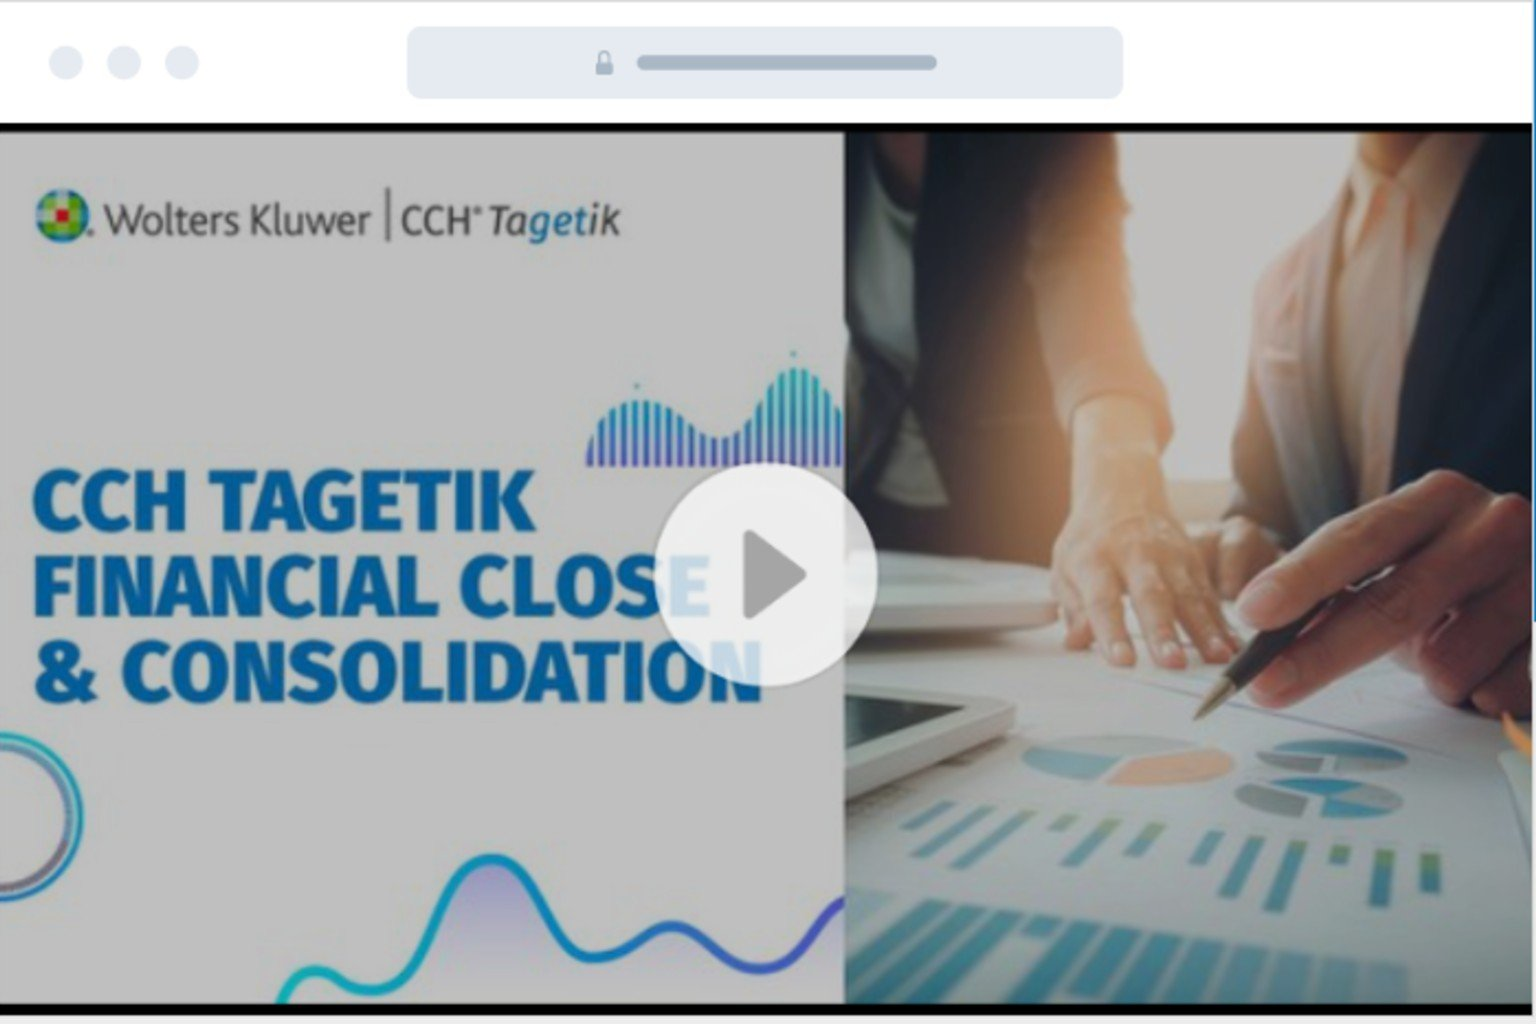 CCH Tagetik financial close and consolidation